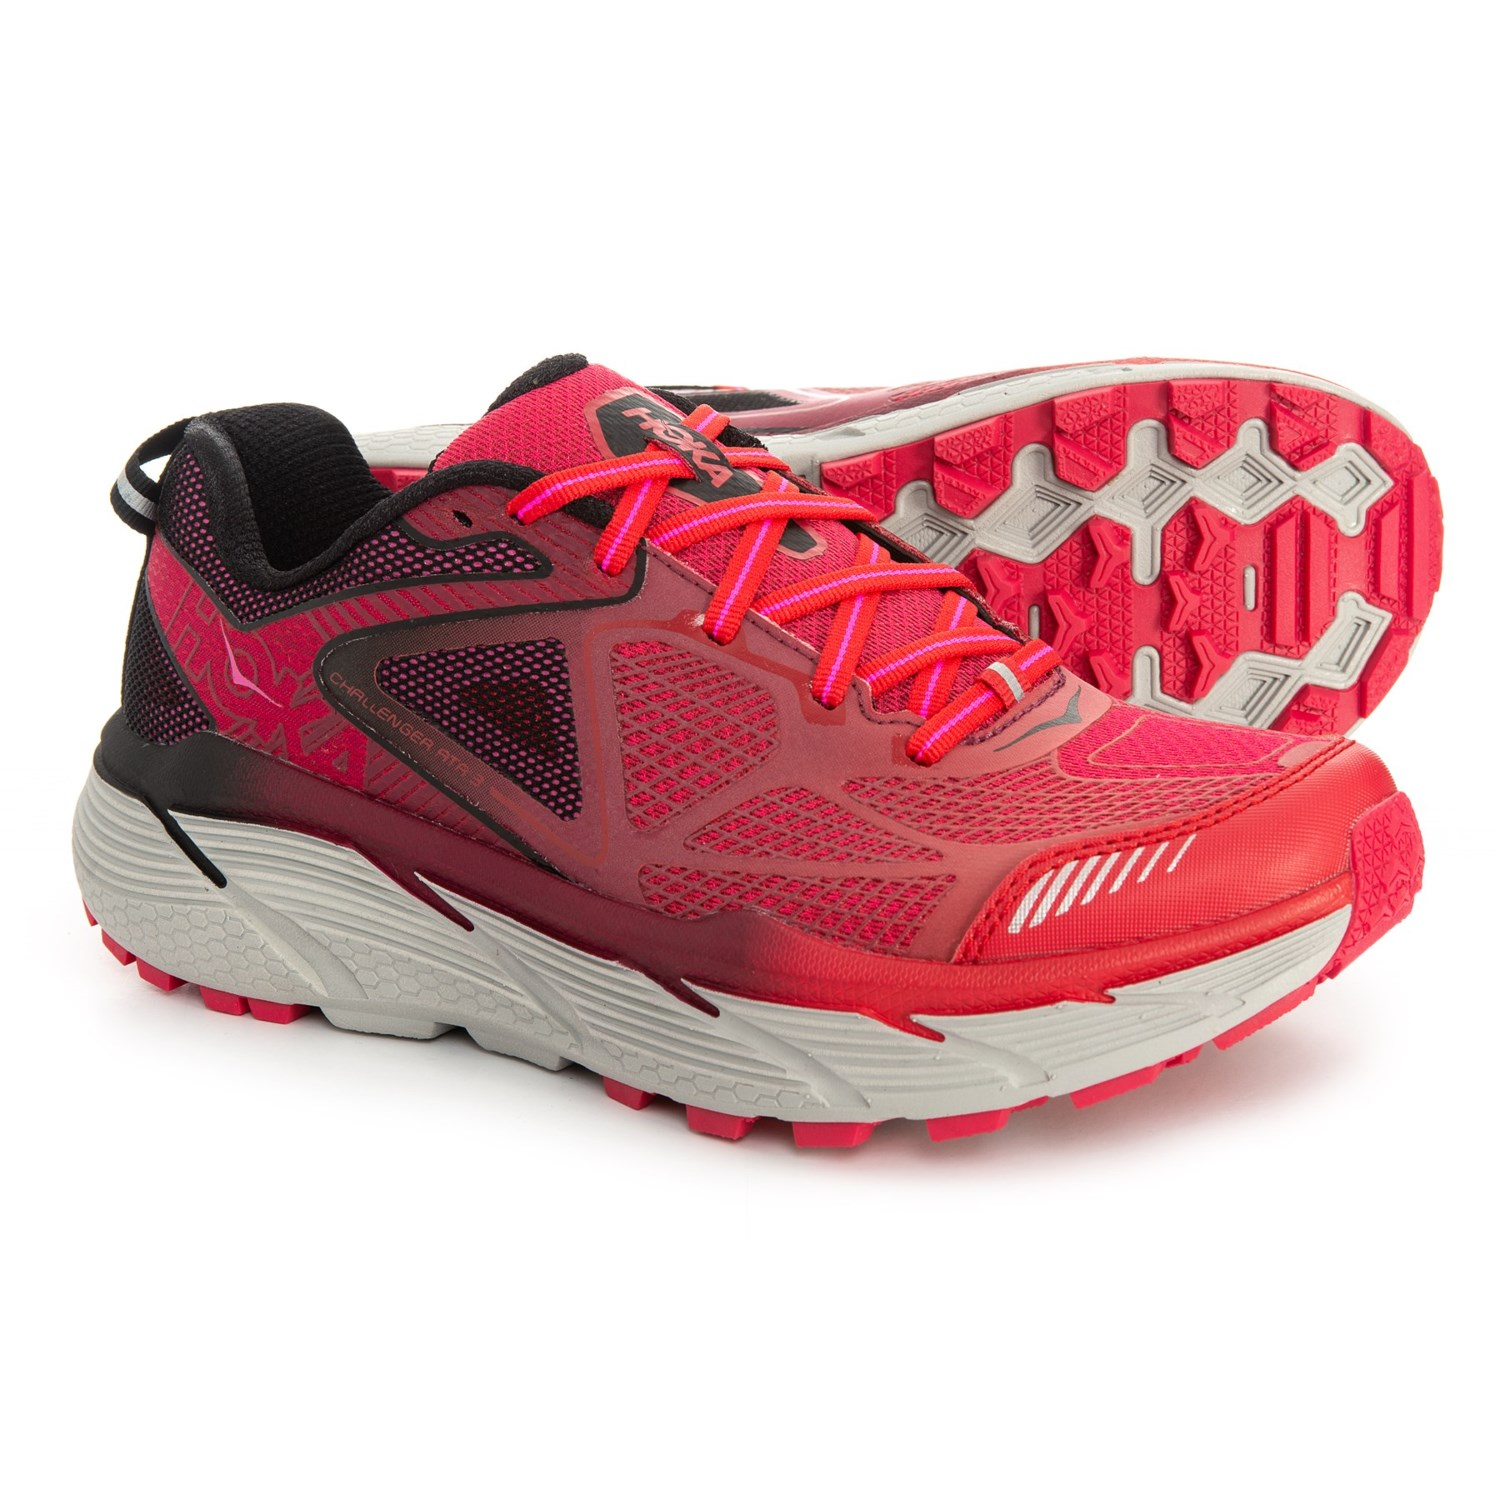 Hoka One One Challenger ATR 3 Trail Running Shoes (For Women) in Neon  Fuchsia 6c07d537c78